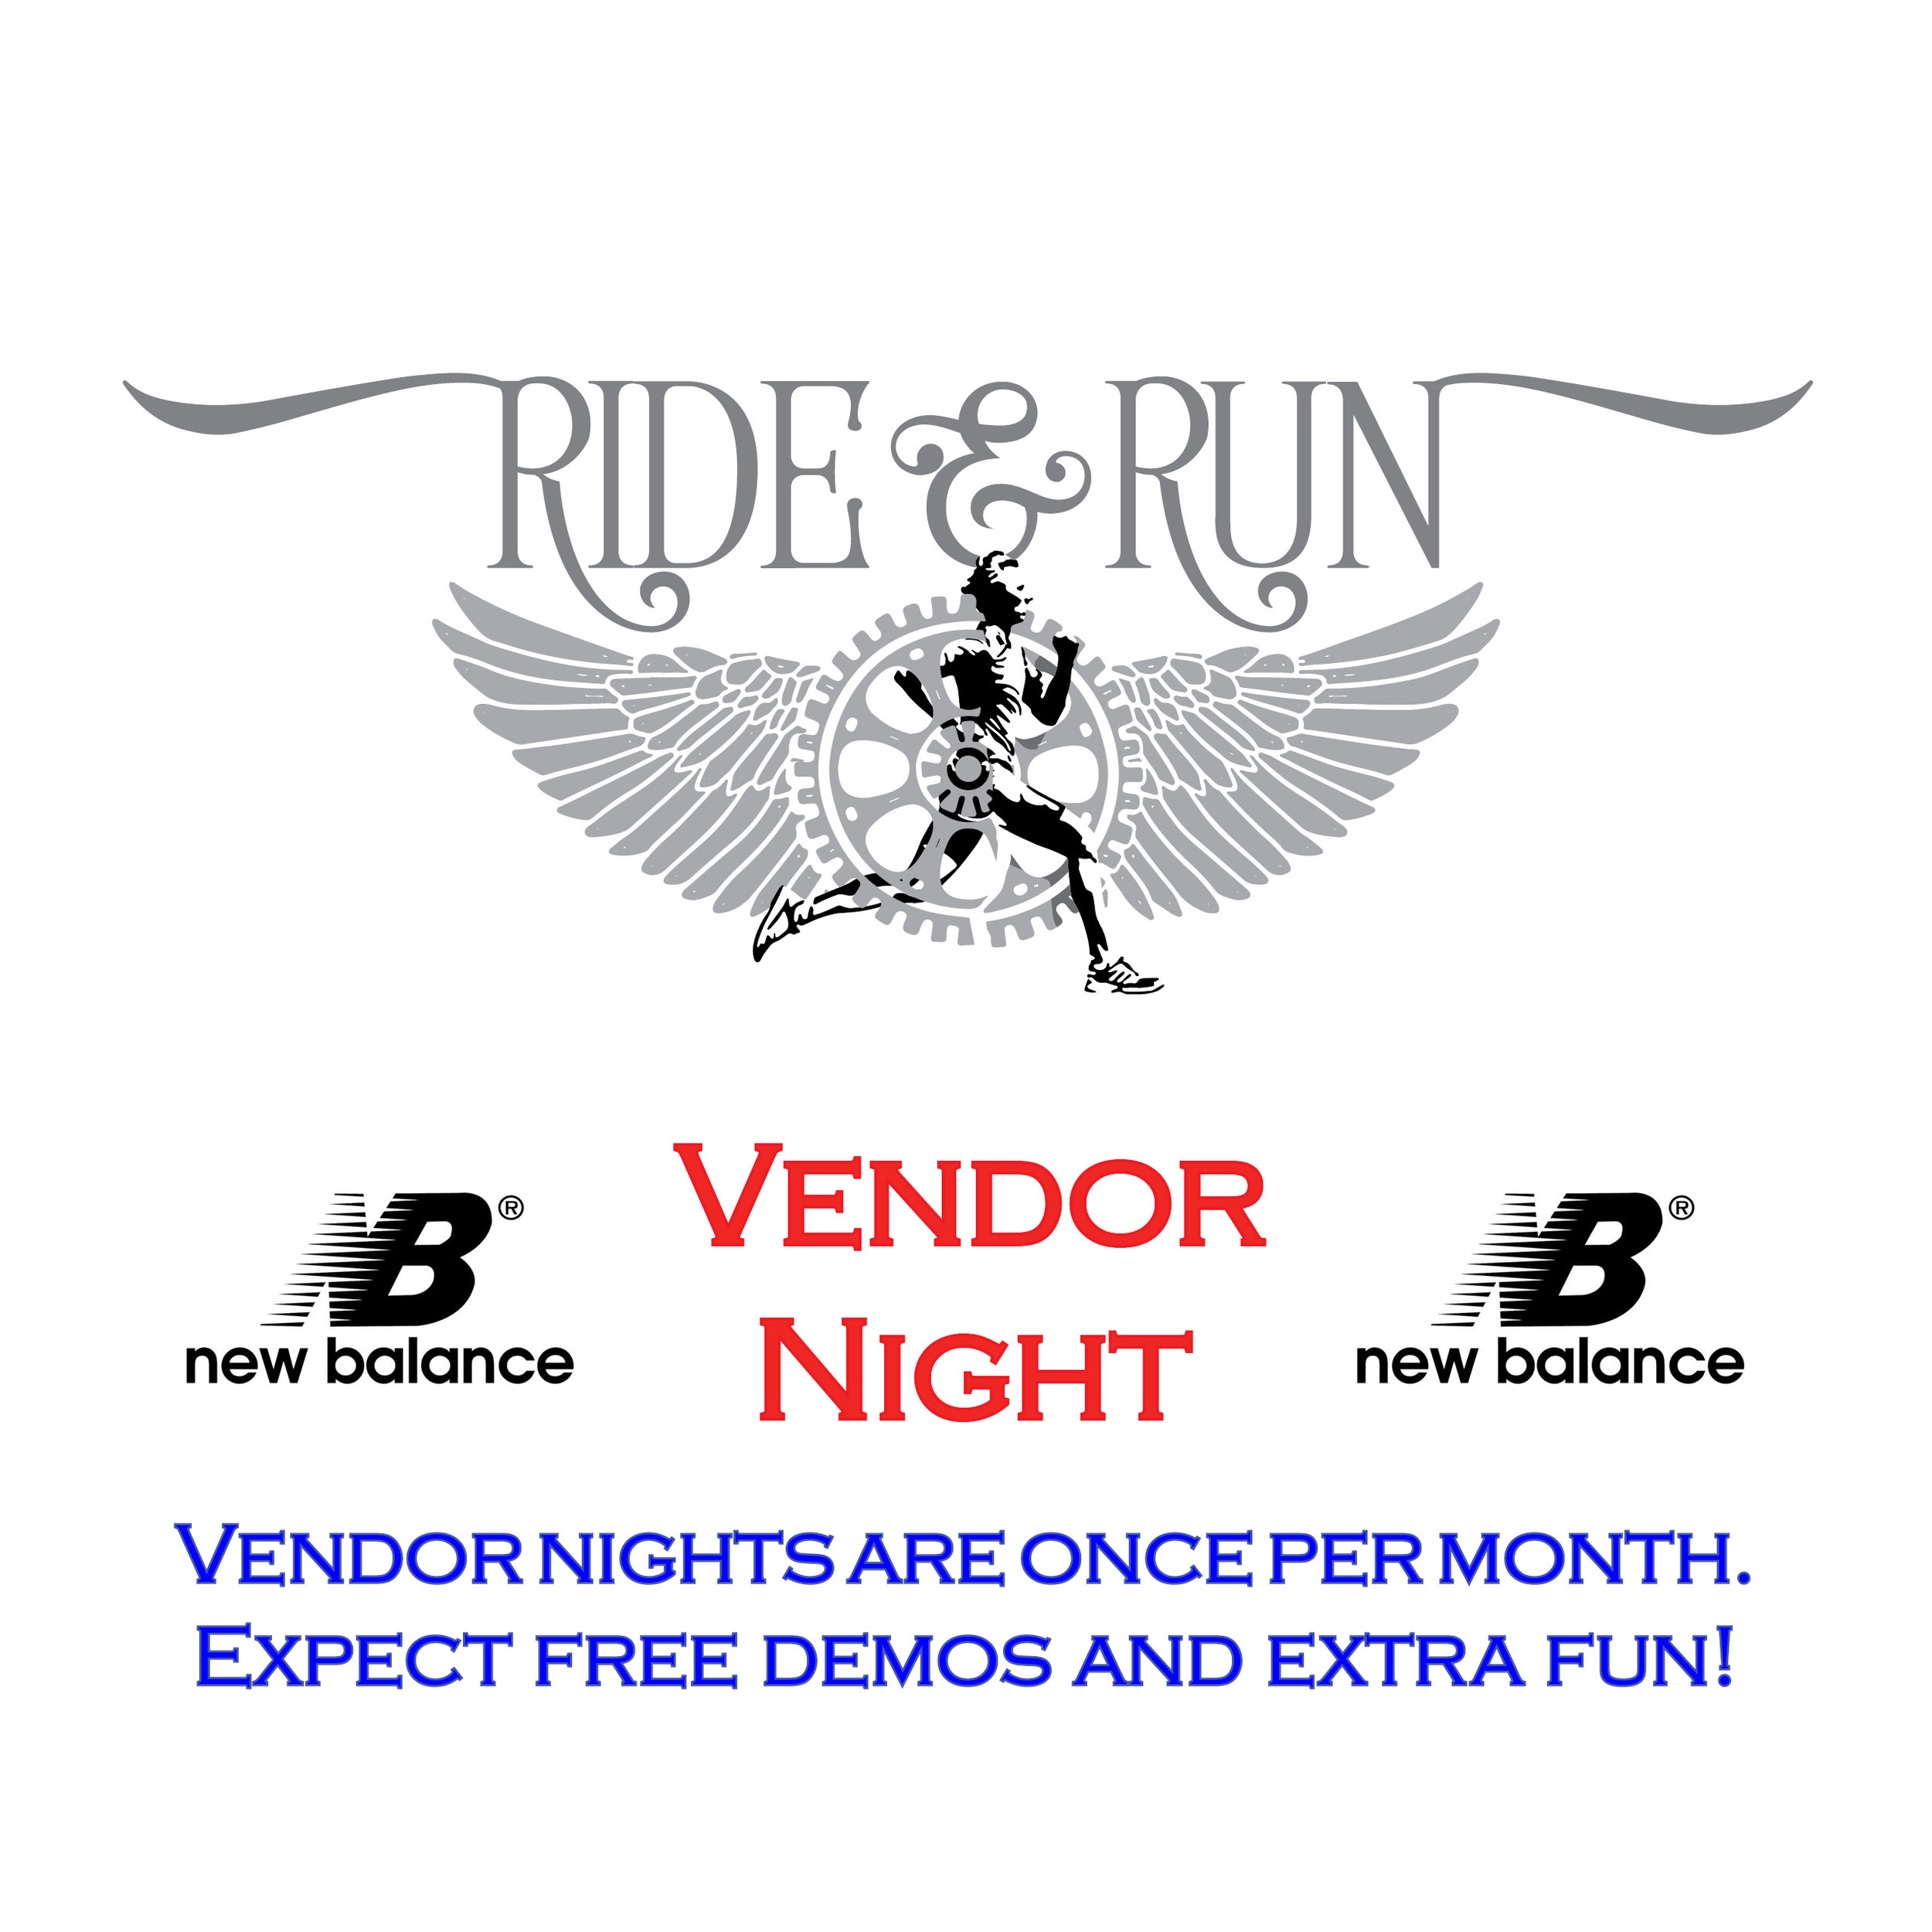 Vendor Night - New Balance.jpg